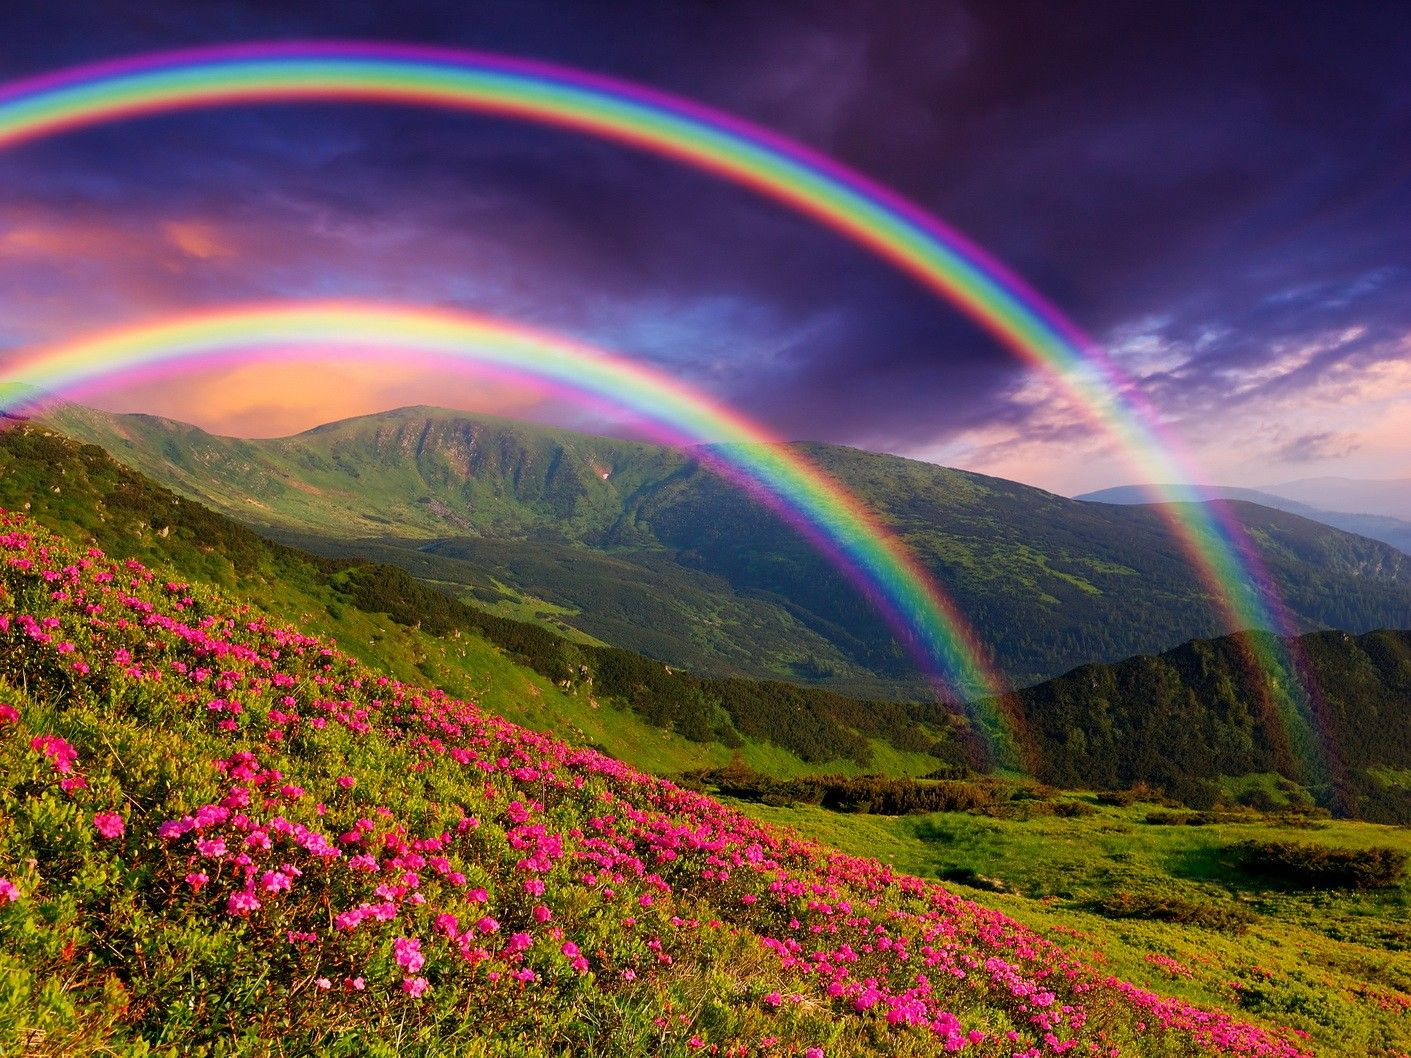 Free Download Rainbow Sky Wallpapers Top Rainbow Sky Backgrounds 1411x1058 For Your Desktop Mobile Tablet Explore 35 Natural Rainbow Hd Wallpapers Natural Rainbow Hd Wallpapers Natural Rainbow Wallpaper Hd Natural Wallpaper